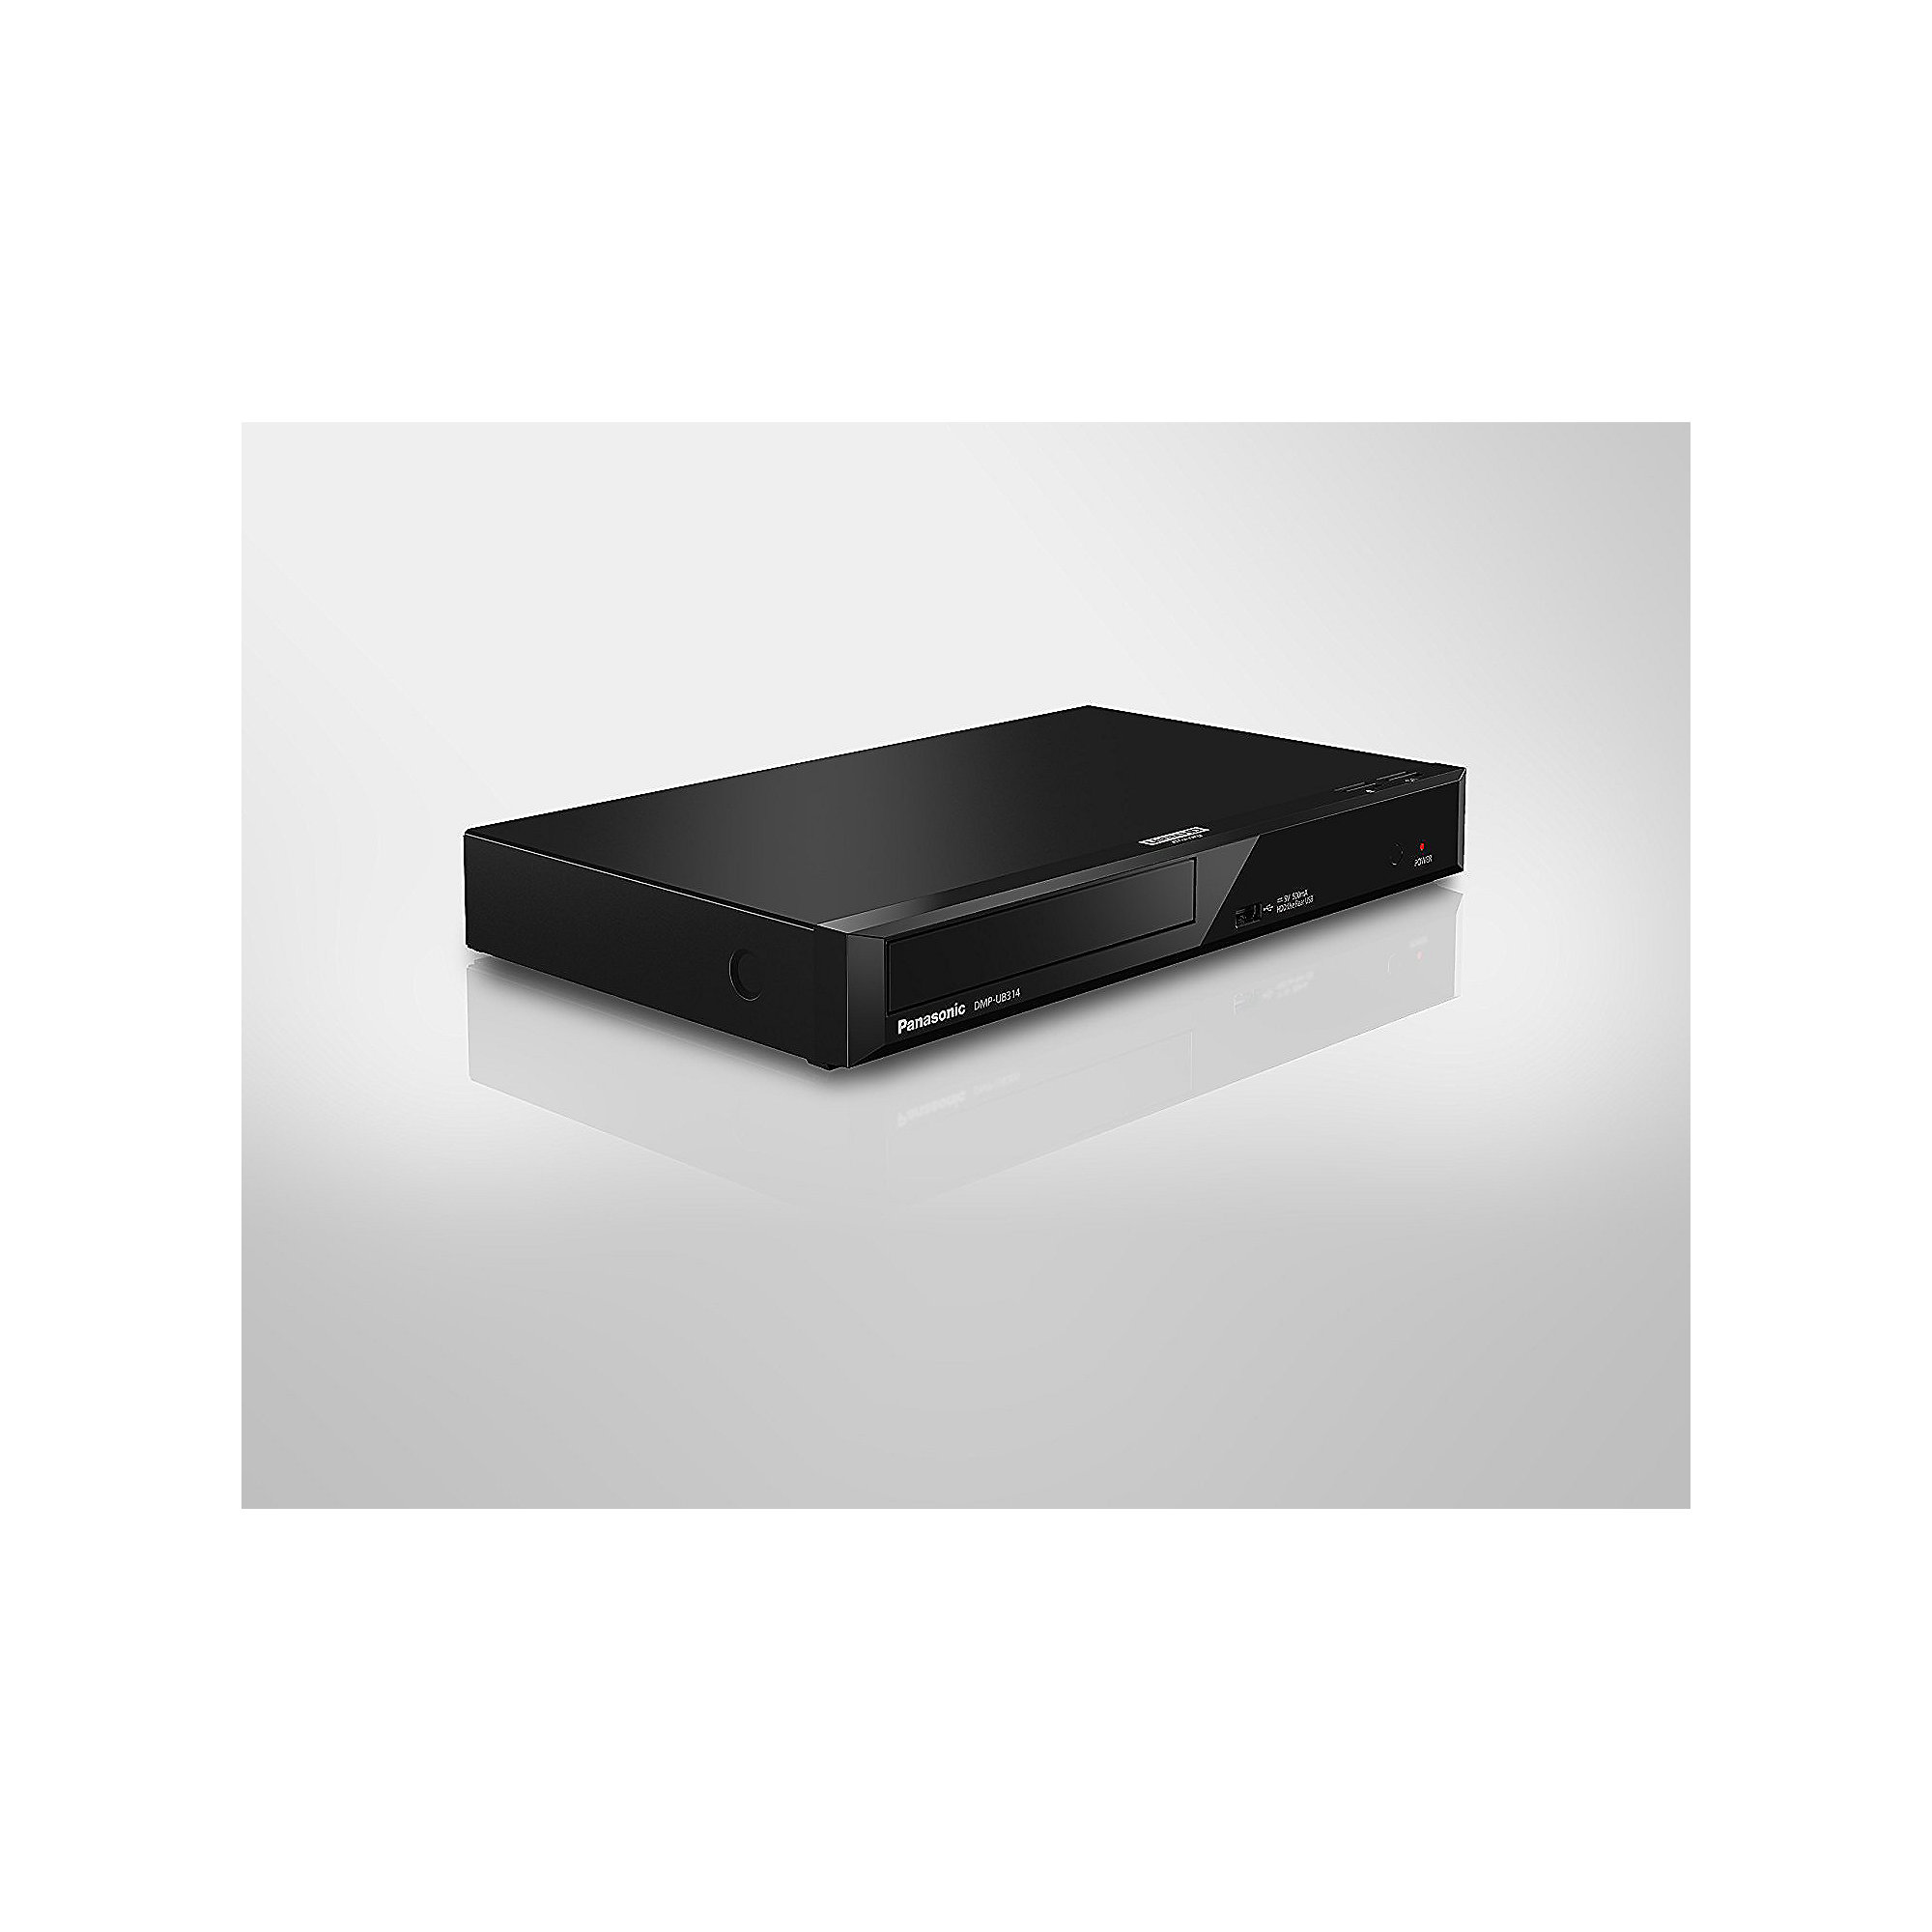 Panasonic DMP-UB314 4K Premium ULTRA HD Blu-ray Player